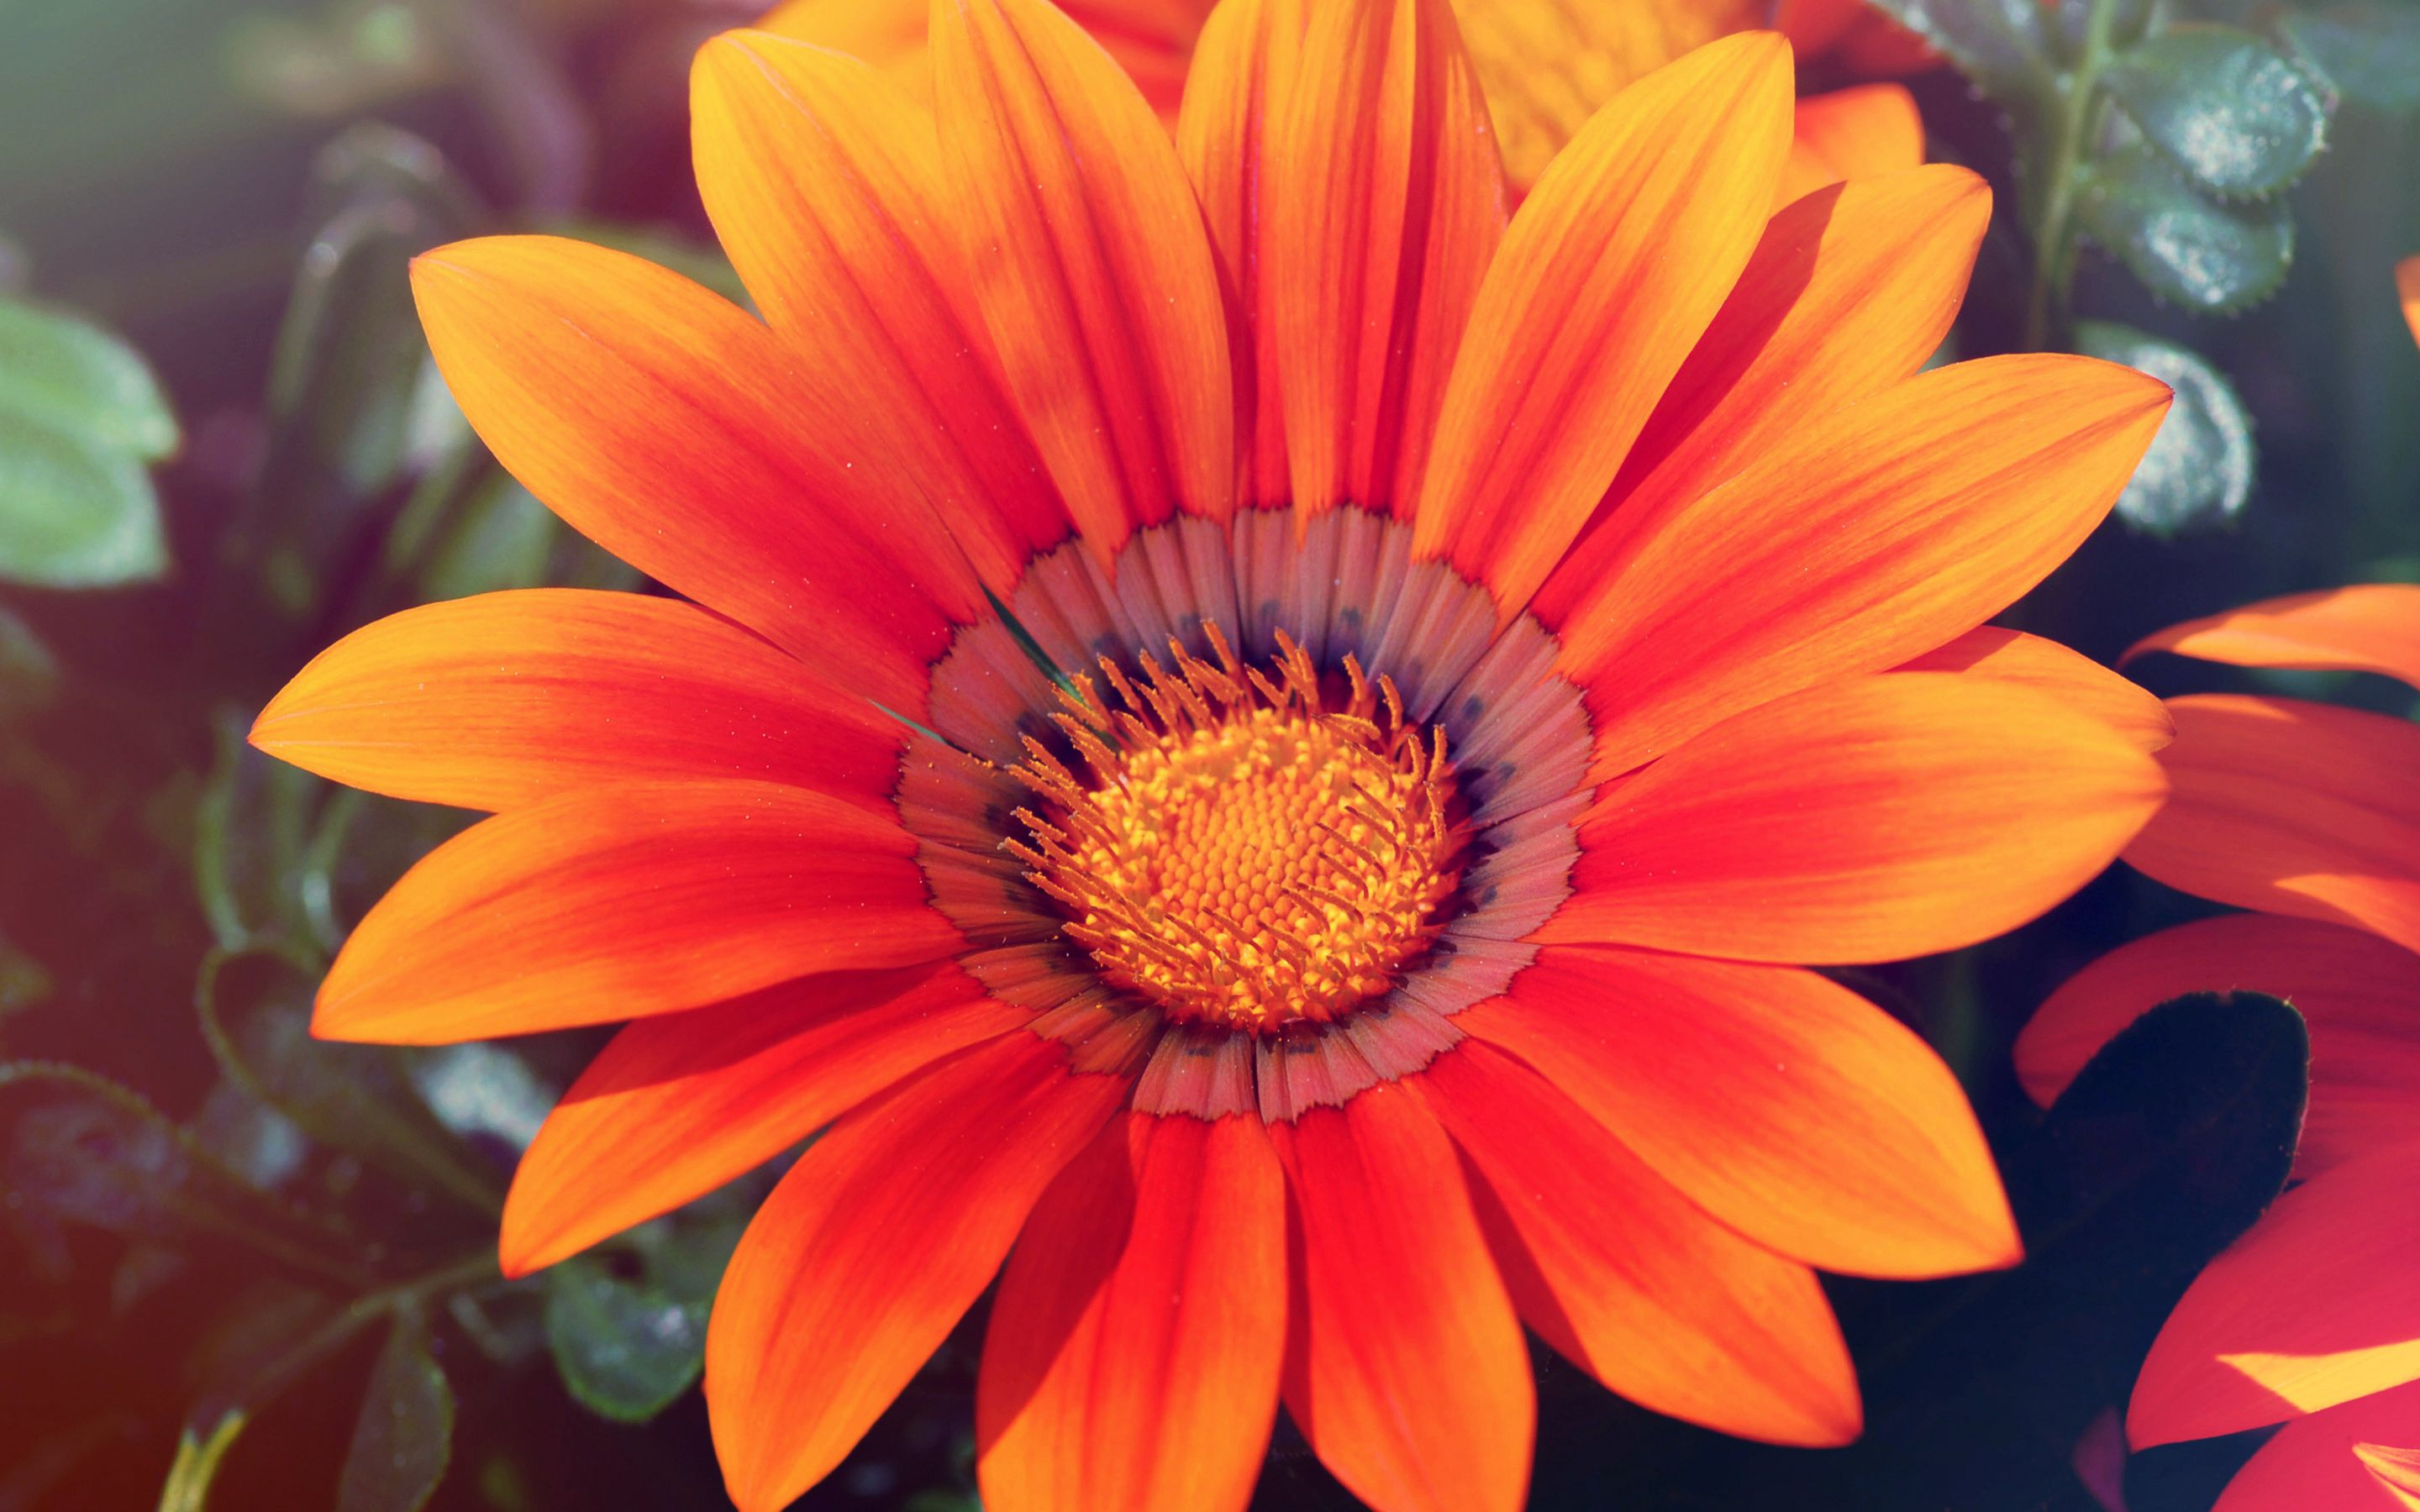 Sommerblume Spring Flowers Photography Red Sunflowers Sunflower Wallpaper